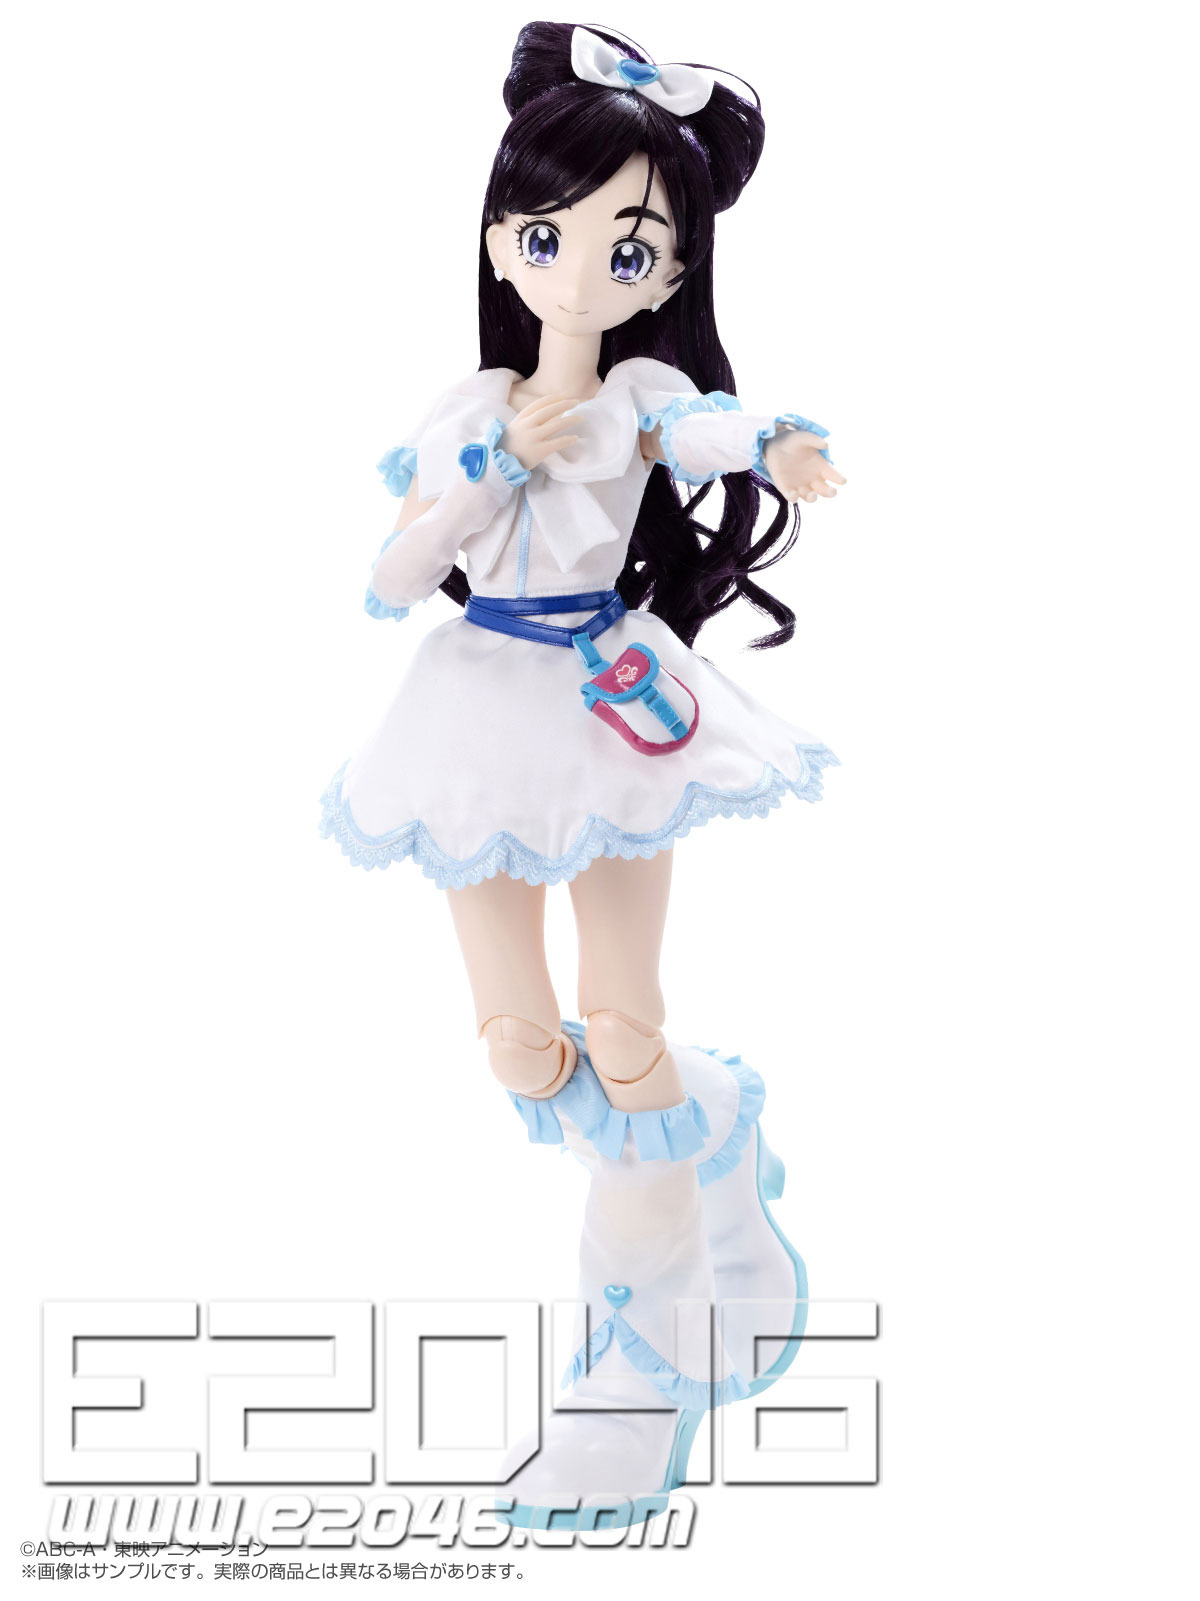 Cure White (DOLL)